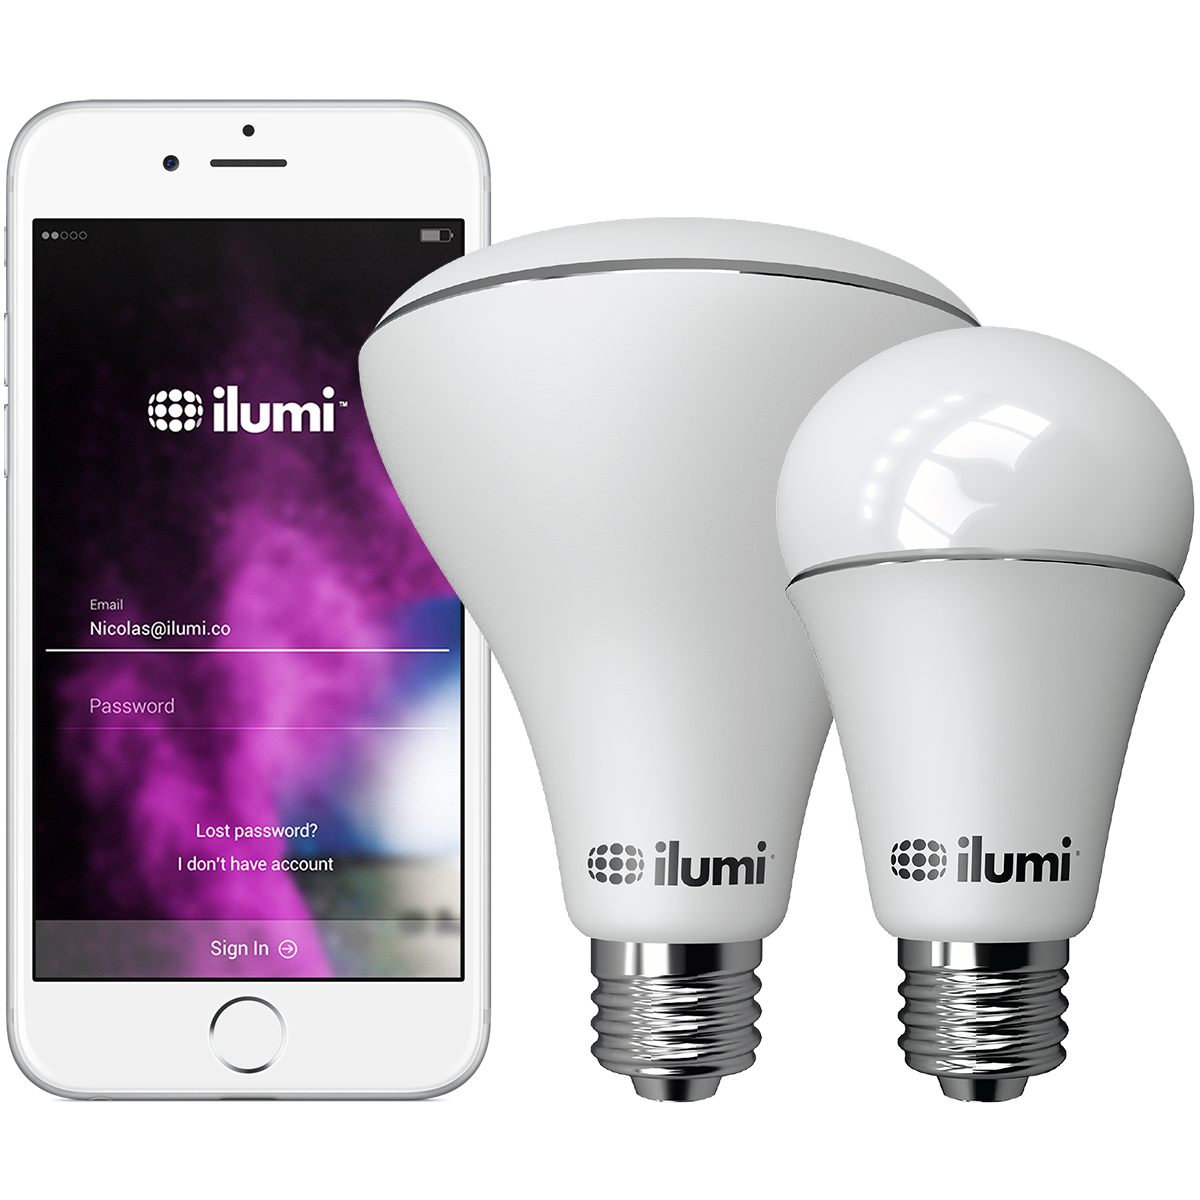 Even Though Itu0027s A Smart Light Bulb, Ilumi Is Still As Easy As Screwing In  A Normal Incandescent Bulb. No Routers, No Bridges, No Wi Fi Required, ... Gallery